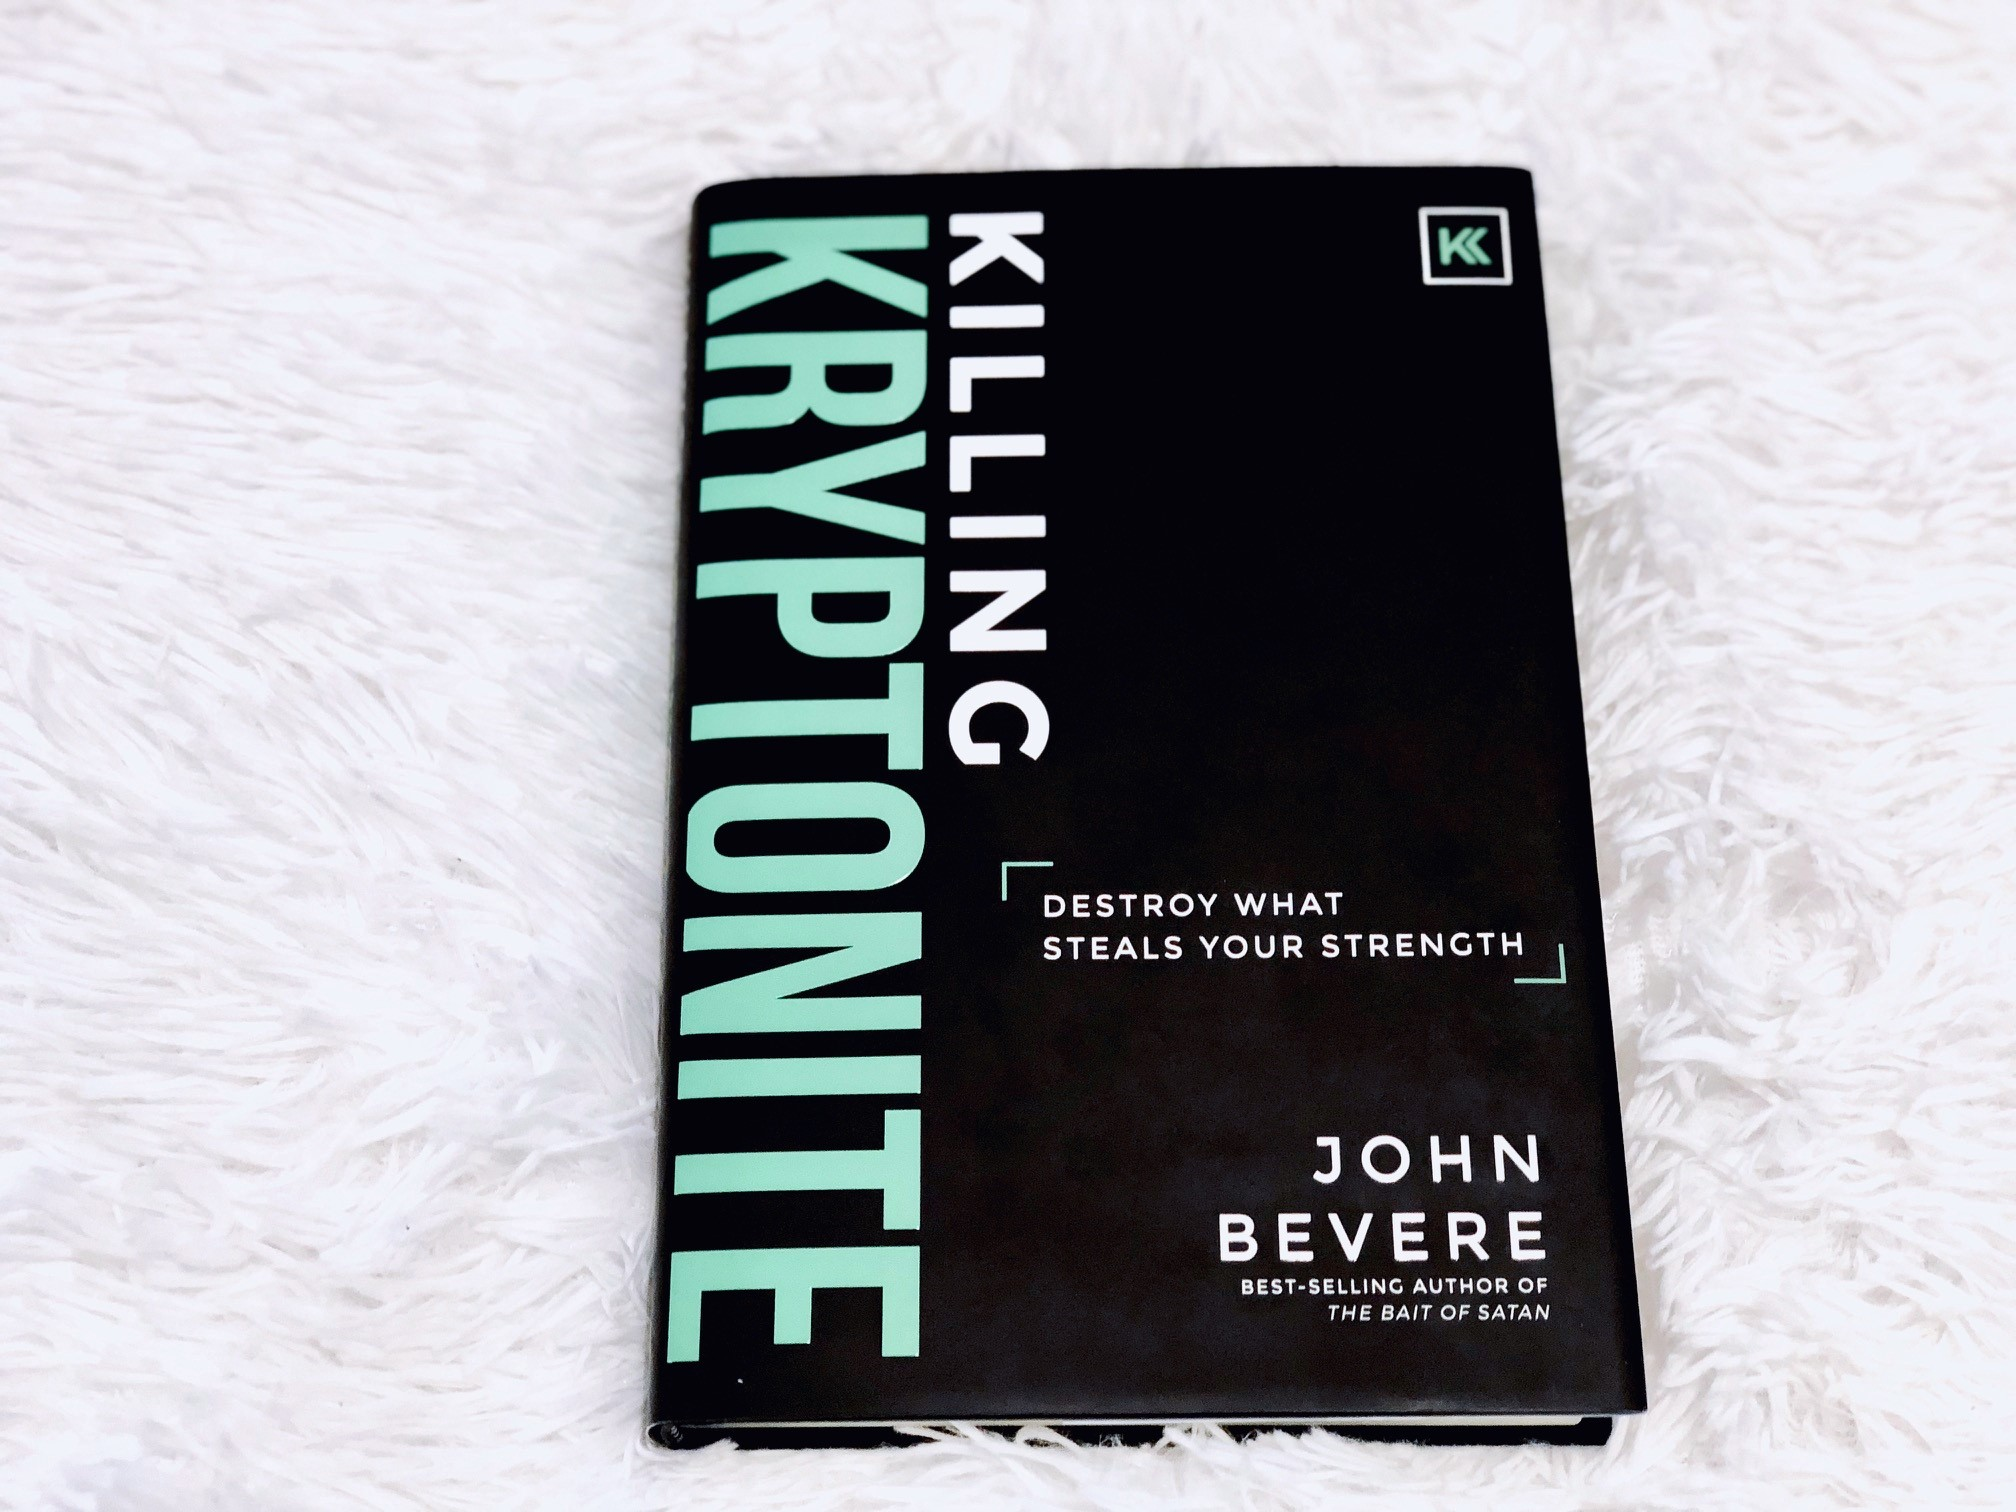 Killing Kryptonite: Destroy What Steals Your Strength by John Bevere